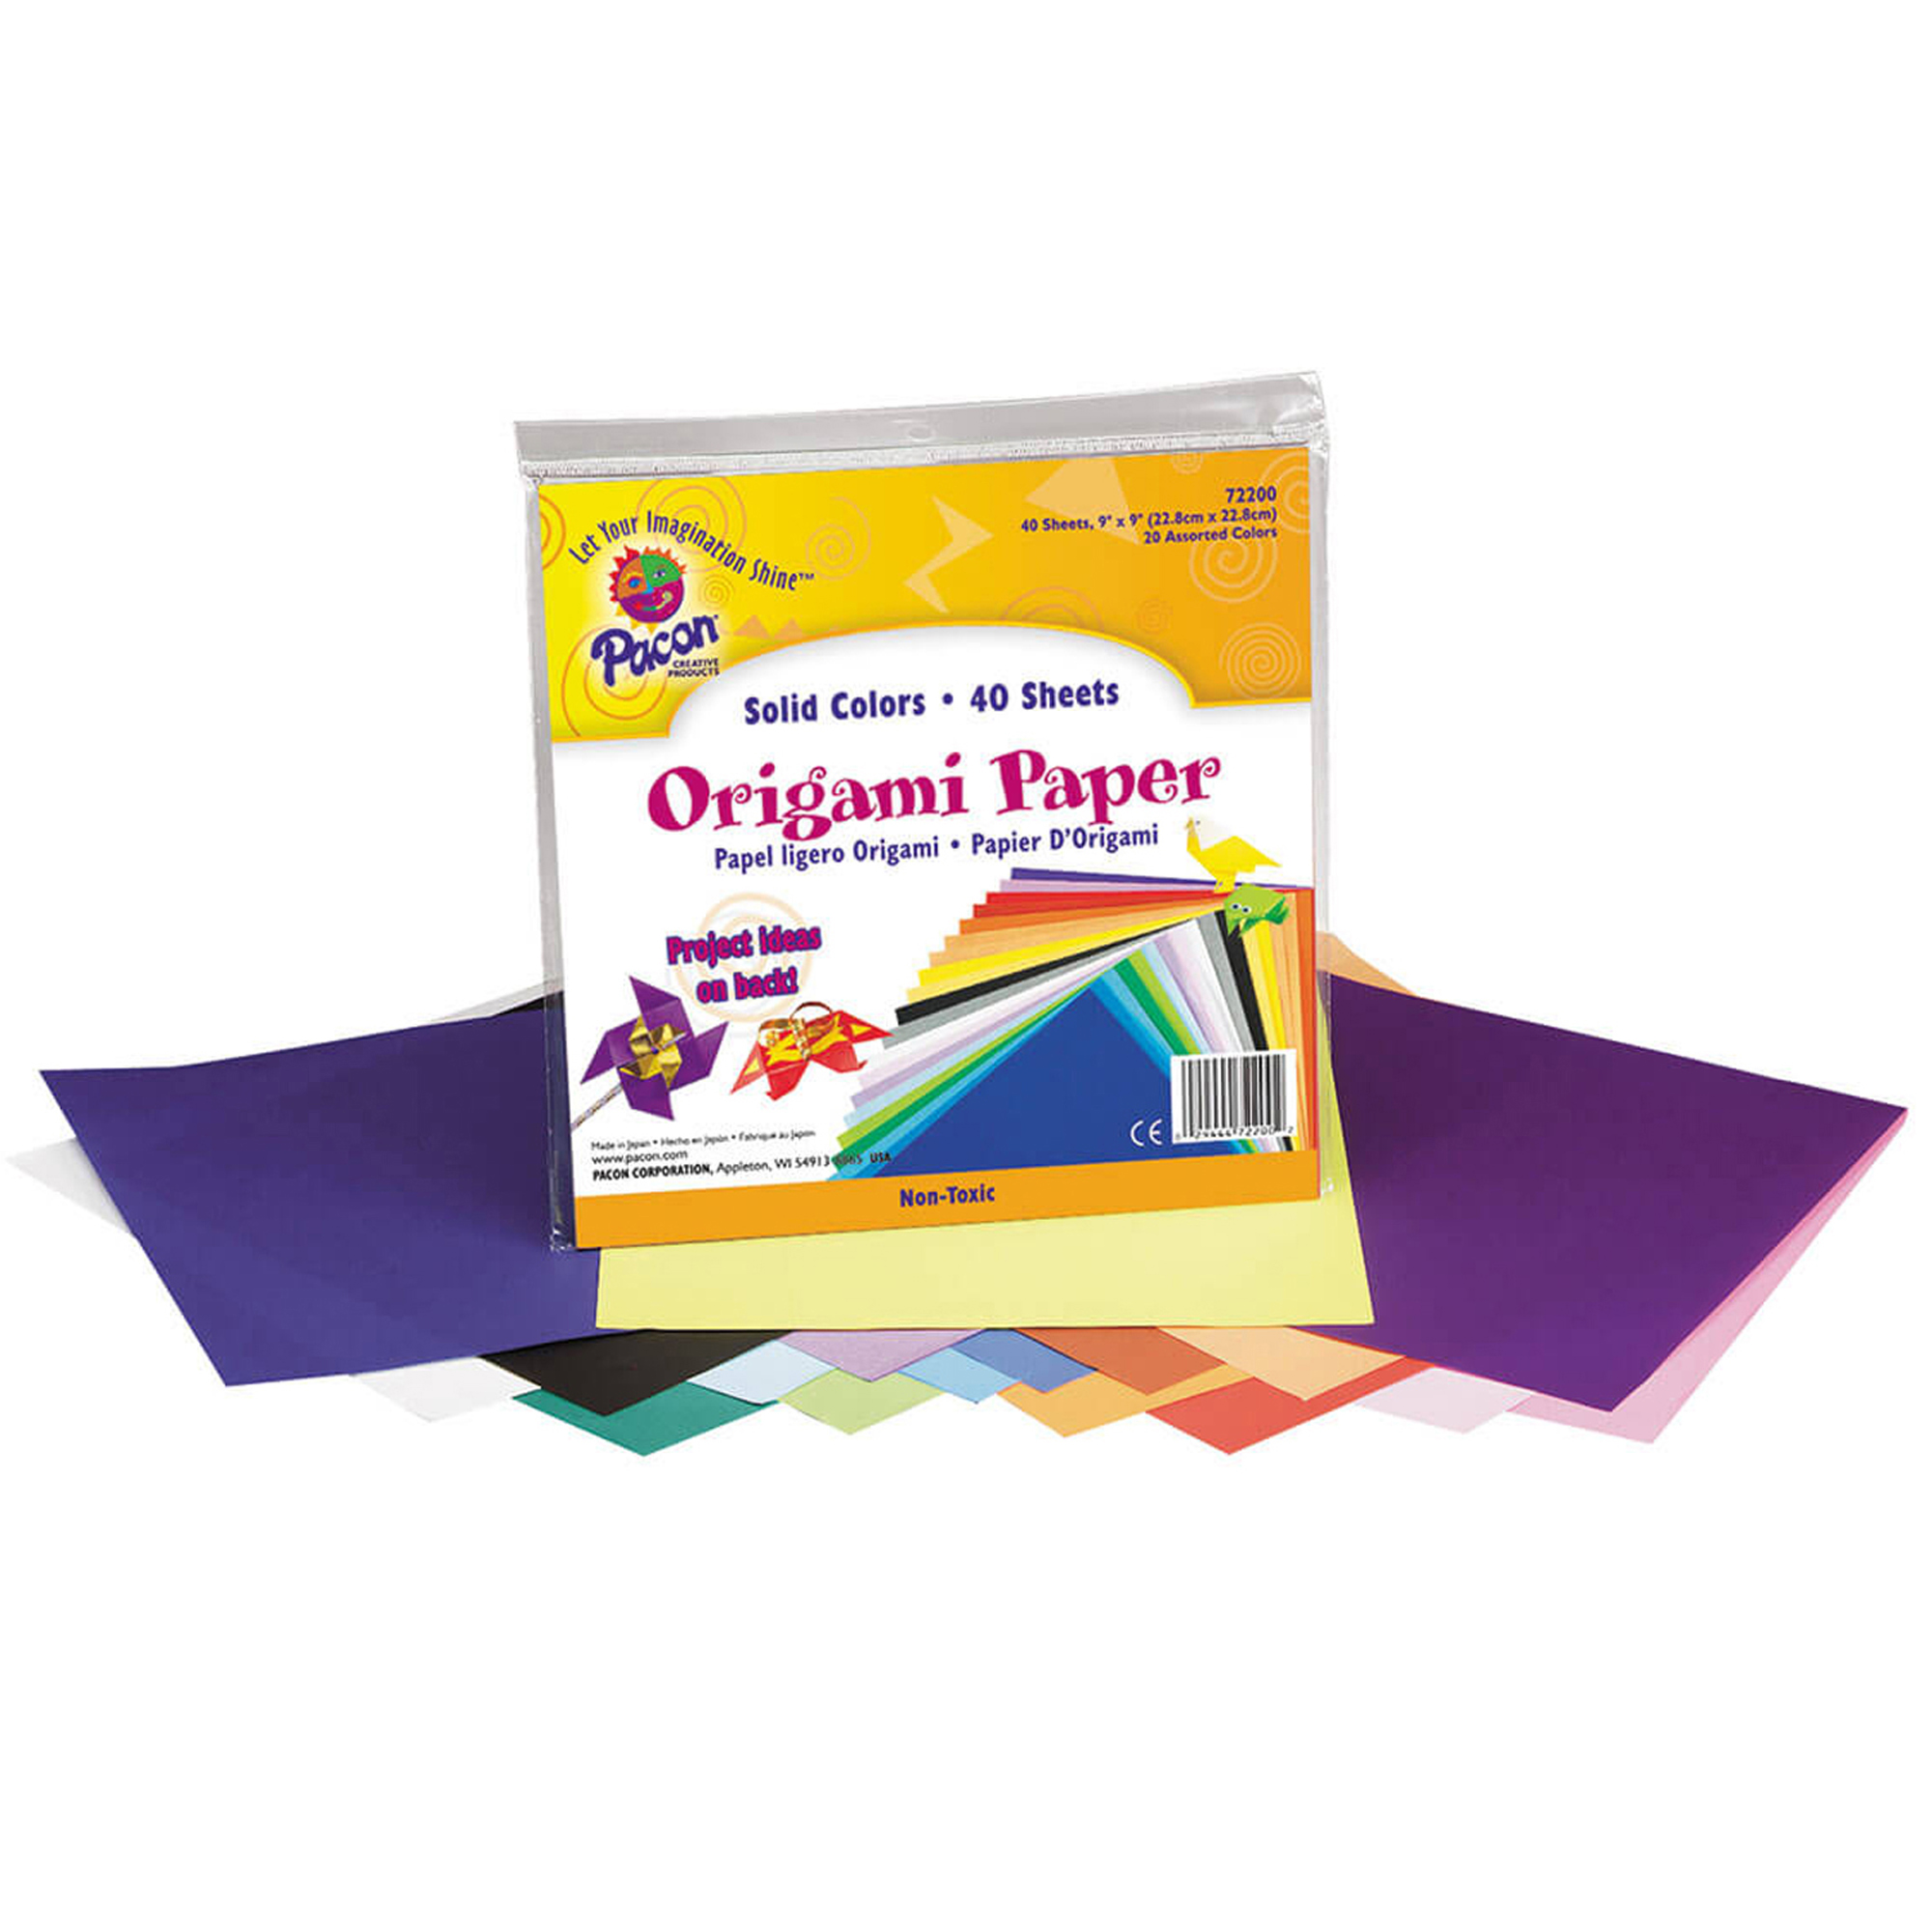 "Pacon® Origami Paper, 9"" x 9"", Assorted Colors, 40 Sheets"